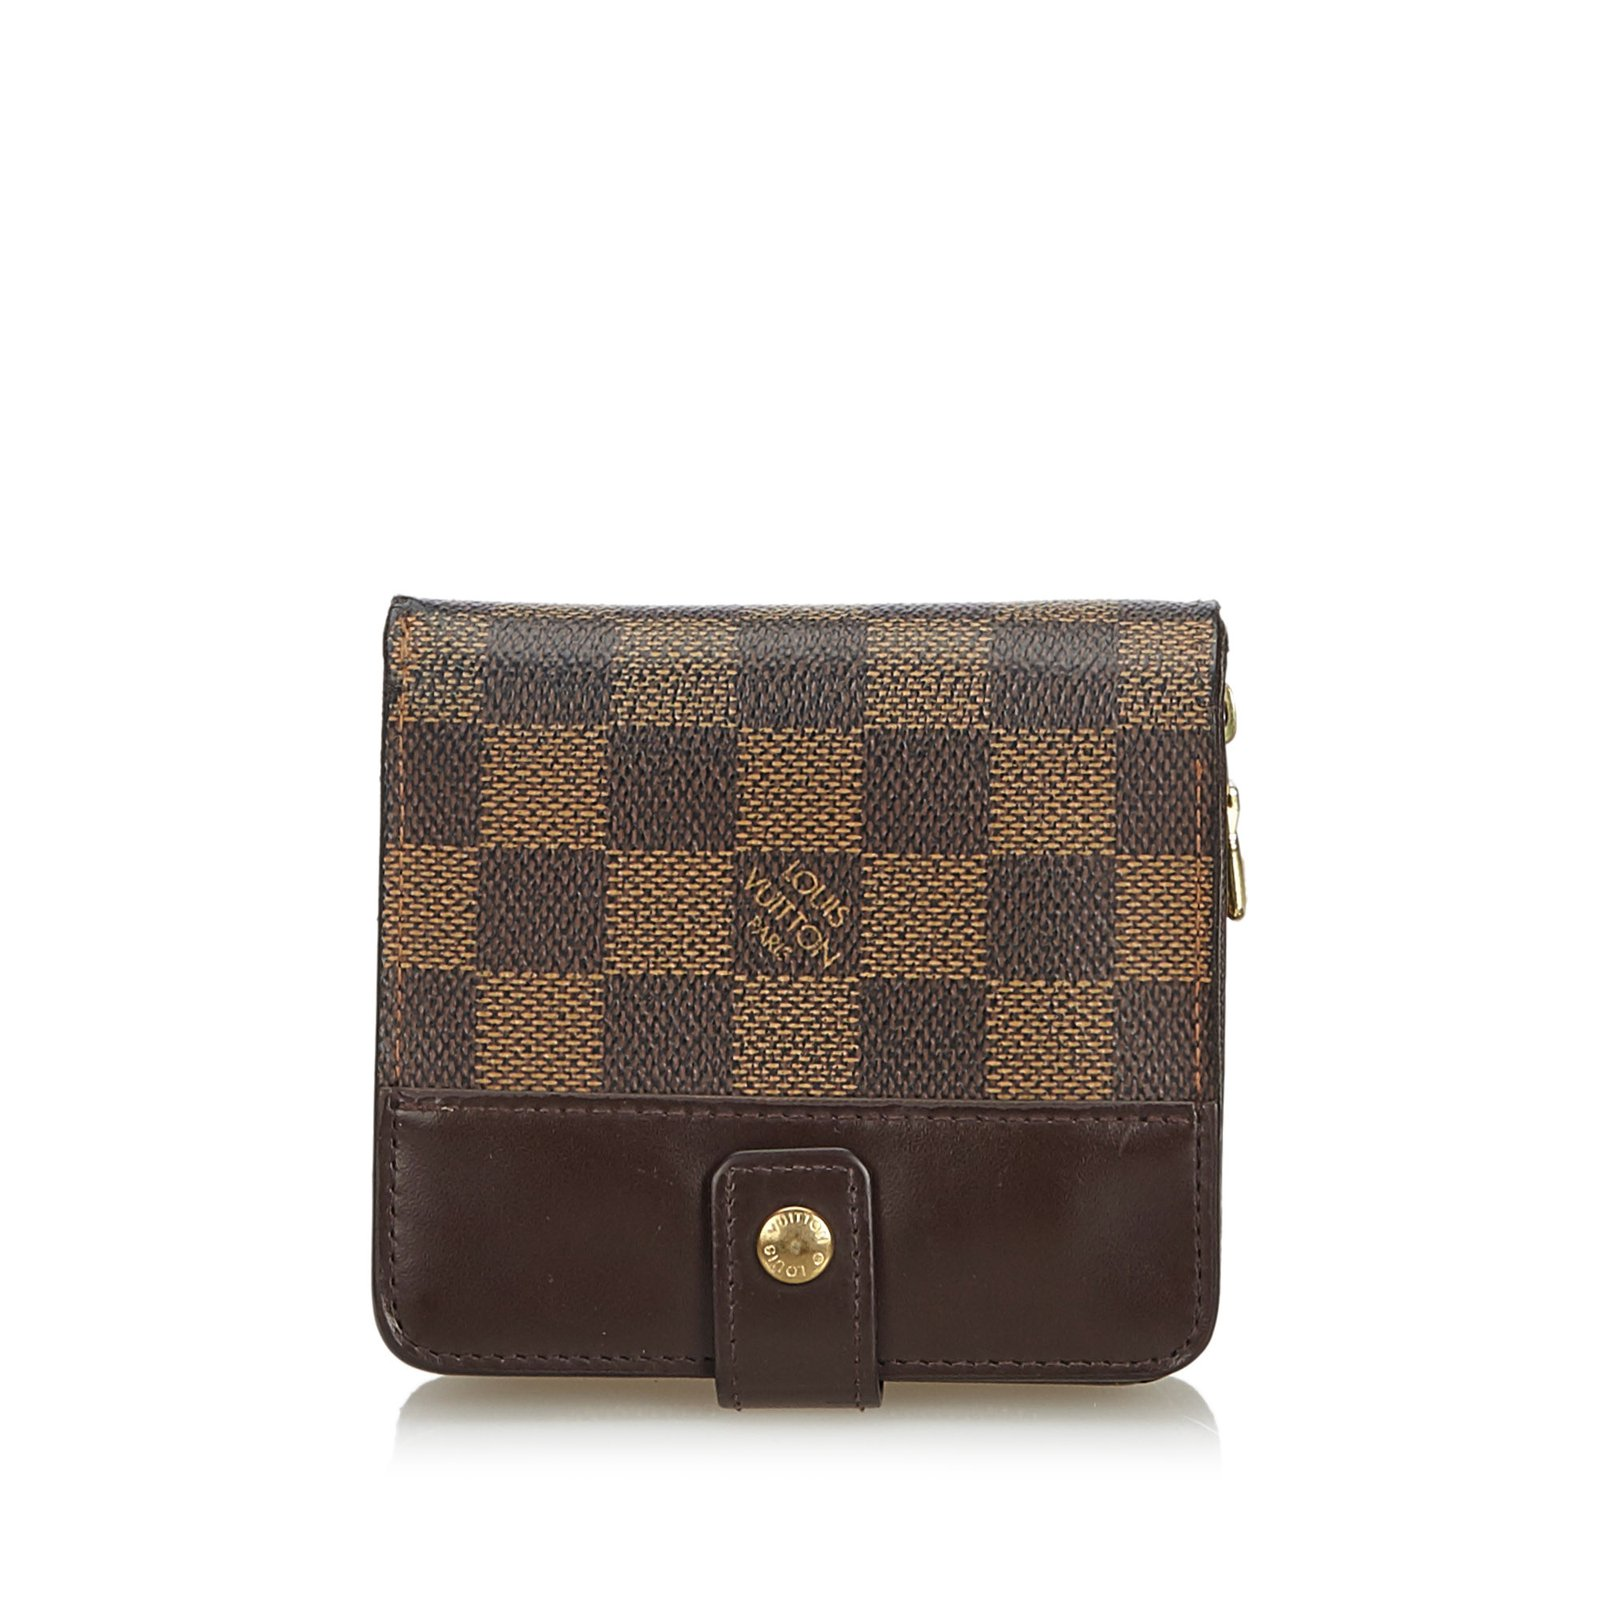 13af188a7e891 Louis Vuitton Damier Ebene Pact Zip Wallet Misc Leather Other